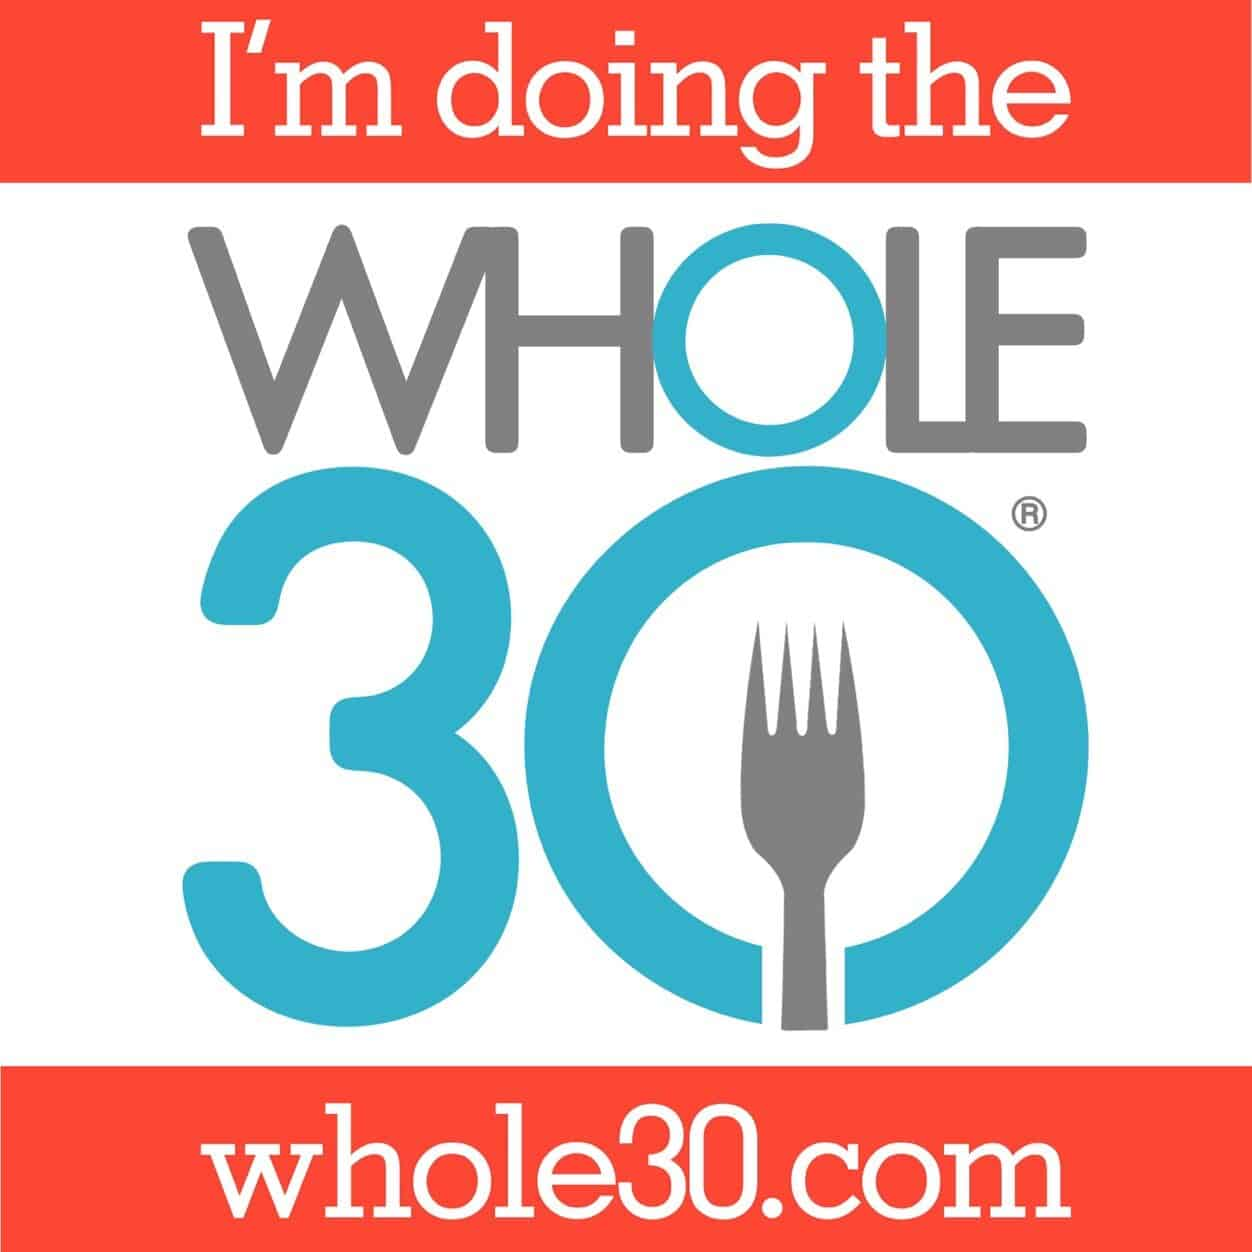 Day 28 UPDATE OF WHOLE30